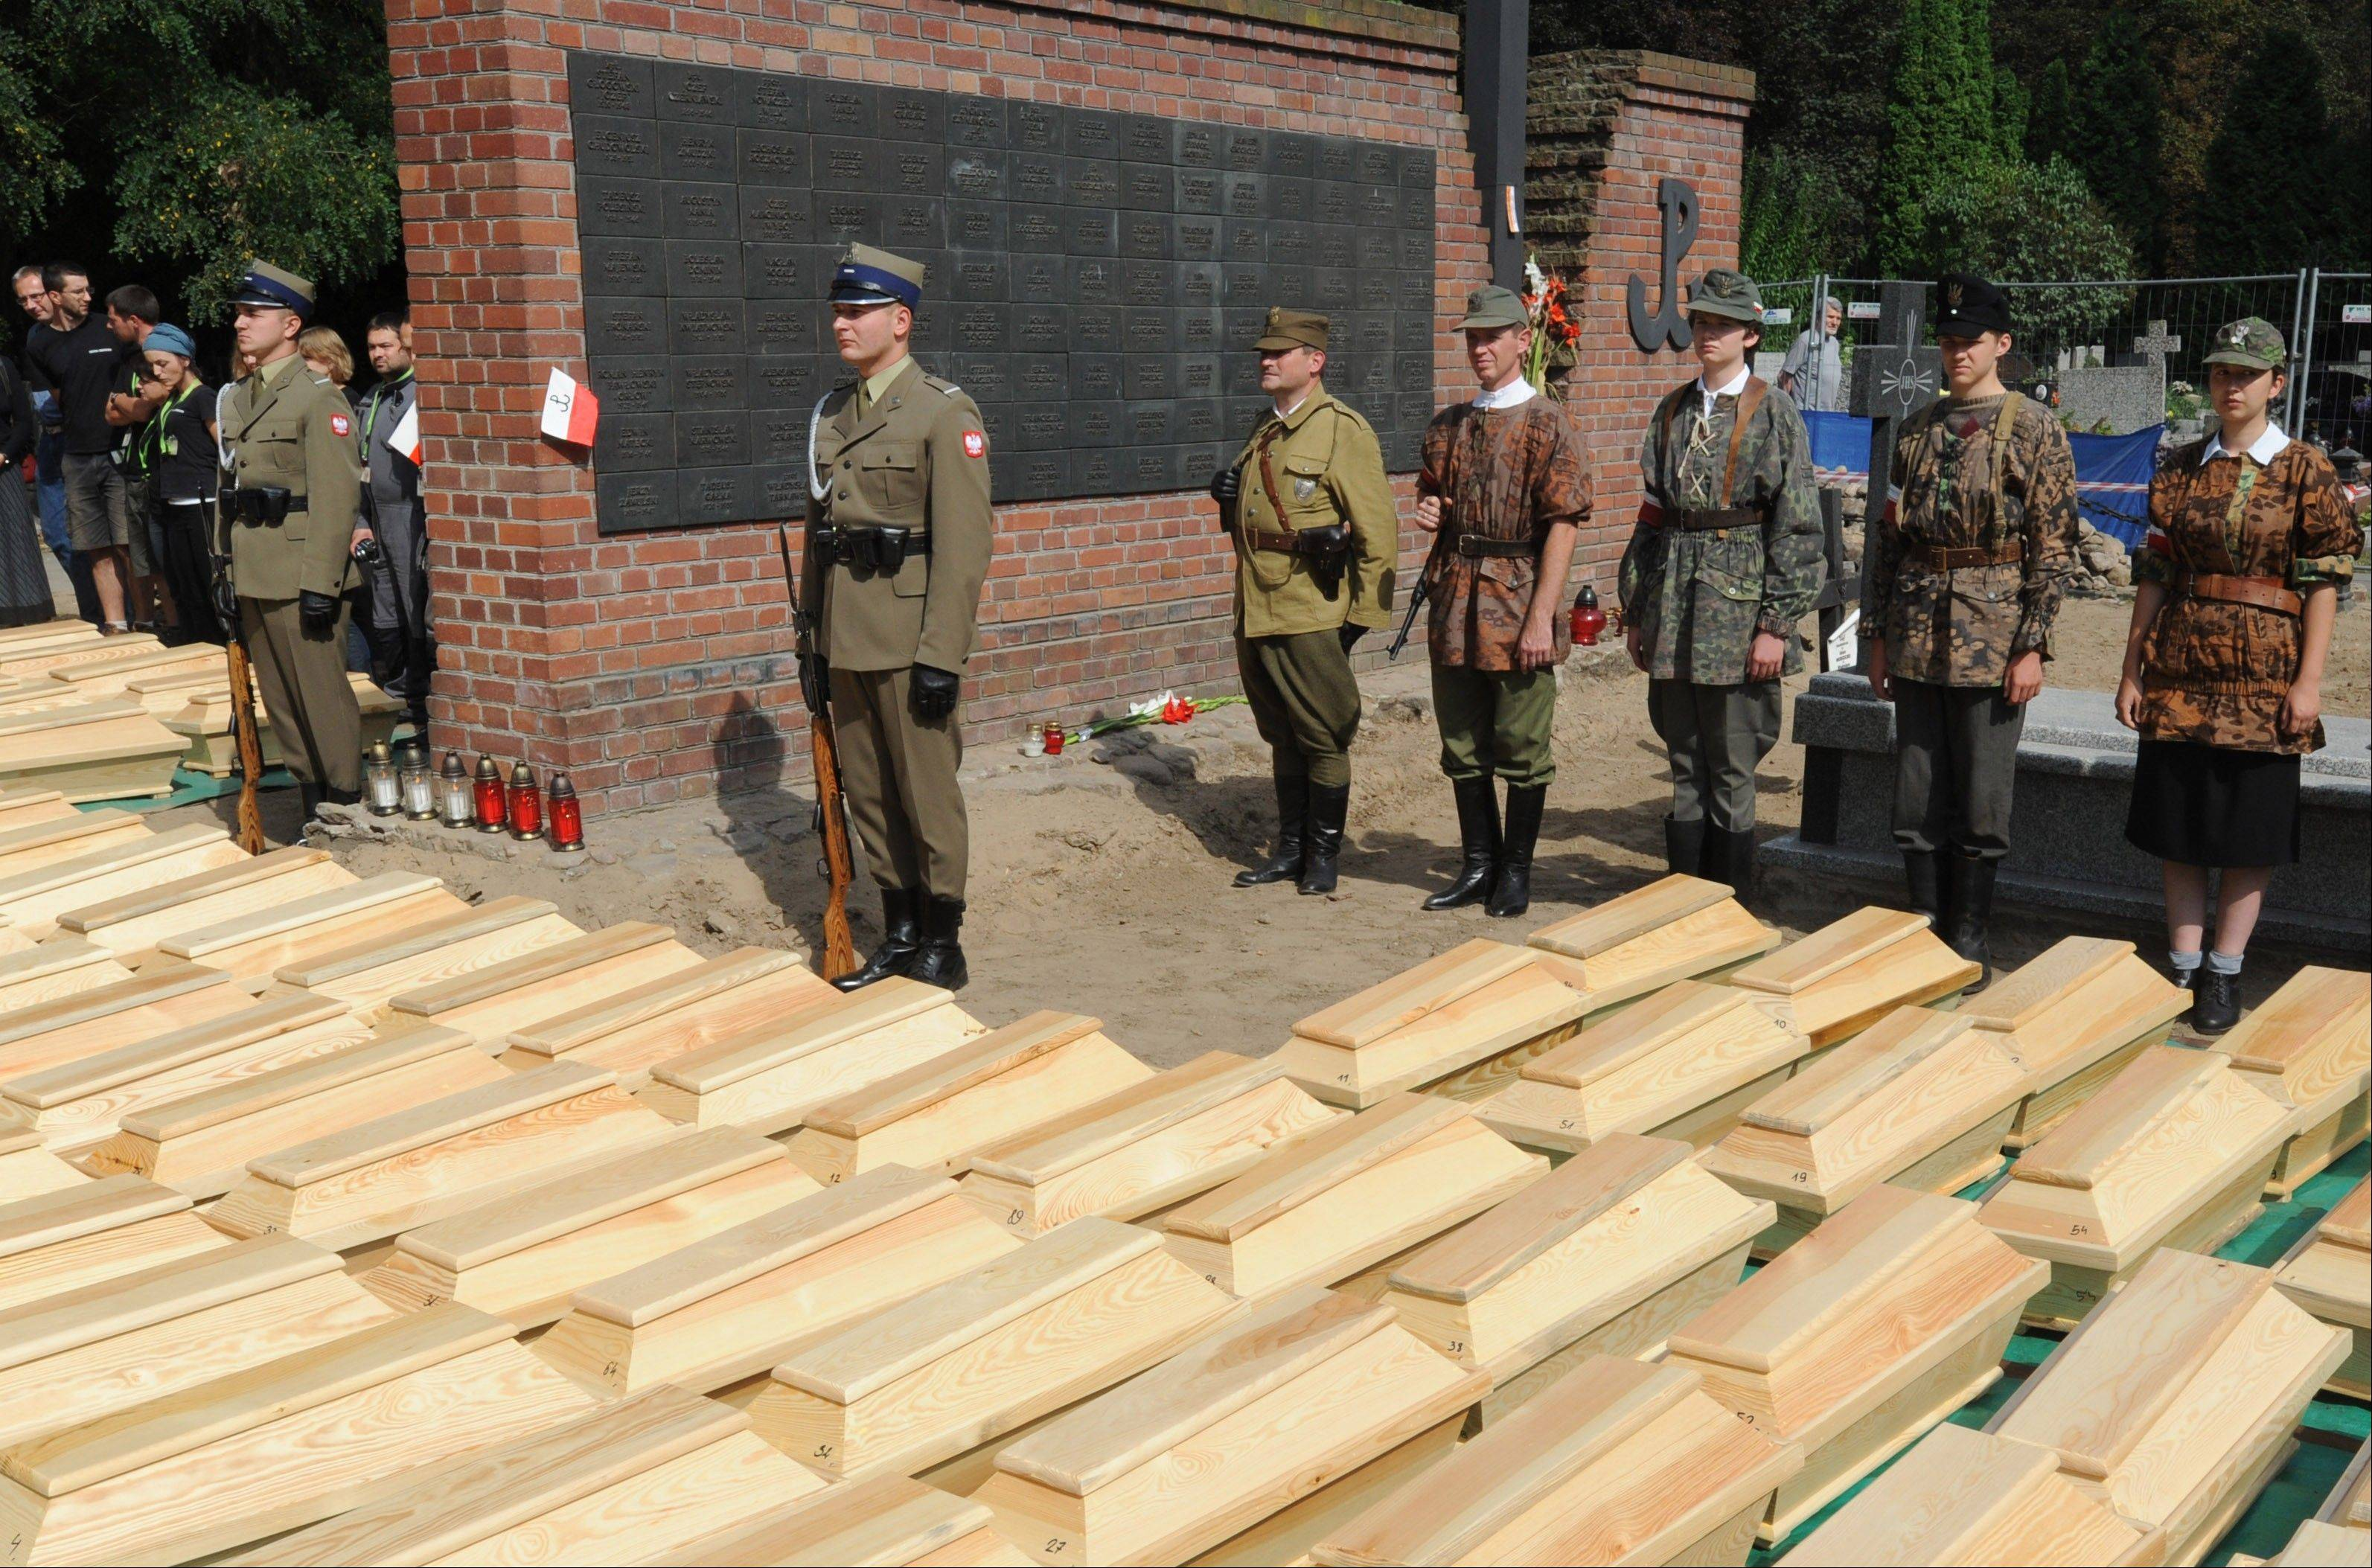 Soldiers and scouts stand in front of coffins containing remains of World War II heroes during a ceremony ending archeological works at the Powazki cemetery in Warsaw, Poland. More than a hundred skeletons of Poles murdered by the communist regime after World War II have been excavated from a secret mass grave on the edge of Warsaw's Powazki Military Cemetery during recent digging works. Historians hope to identify among them the remains of Witold Pilecki who volunteered to be an Auschwitz inmate to secretly gather evidence of atrocities there.